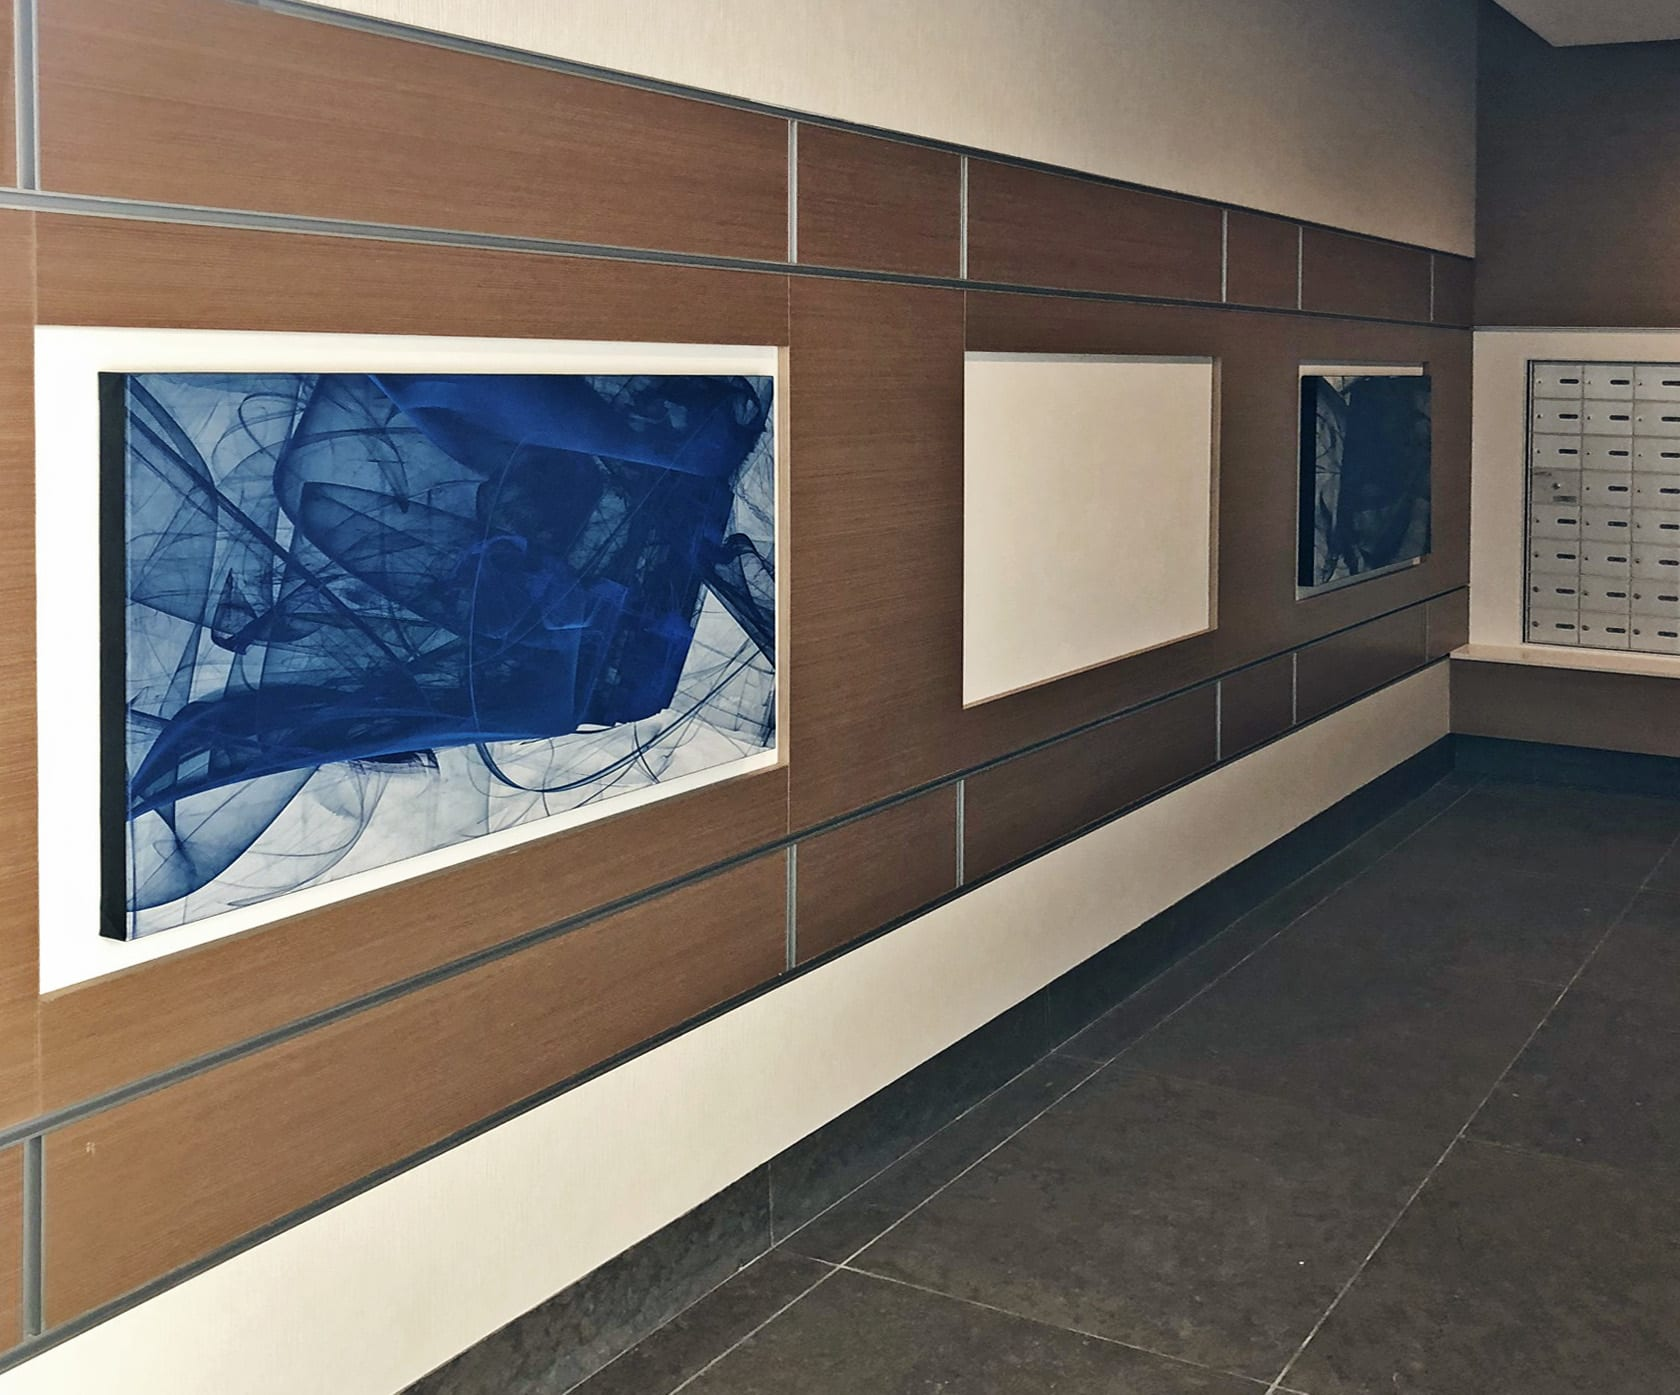 Art & Wall Decor by Rica Belna seen at Vancouver, Vancouver - Art at Station Square (residential high rise)